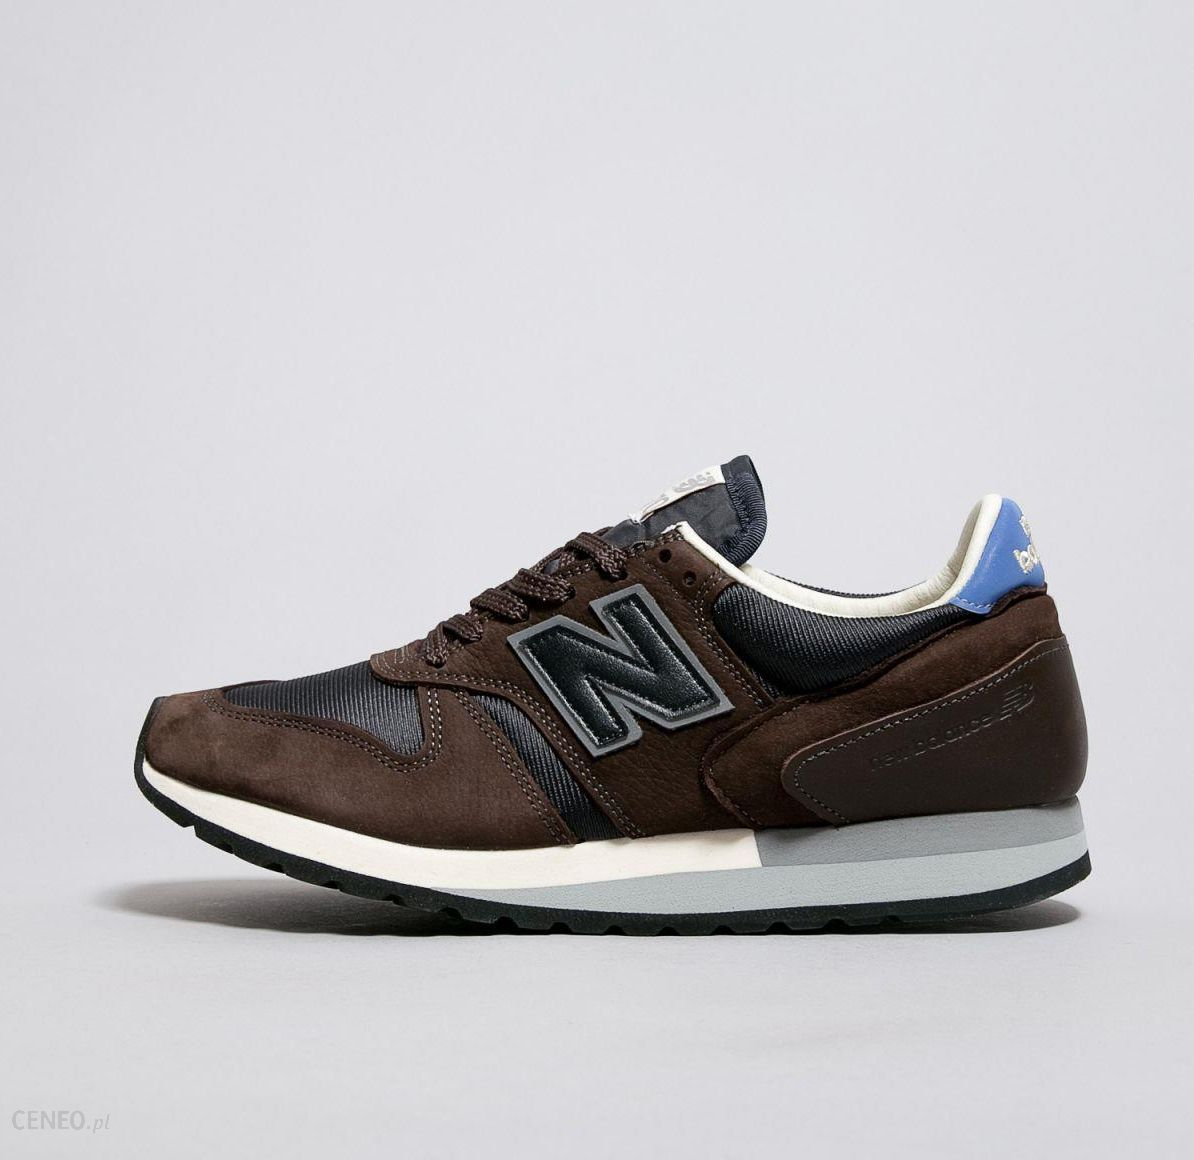 M770NP NORSE PROJECTS LUCEM HAFNIA MADE IN UK Ceny i opinie Ceneo.pl